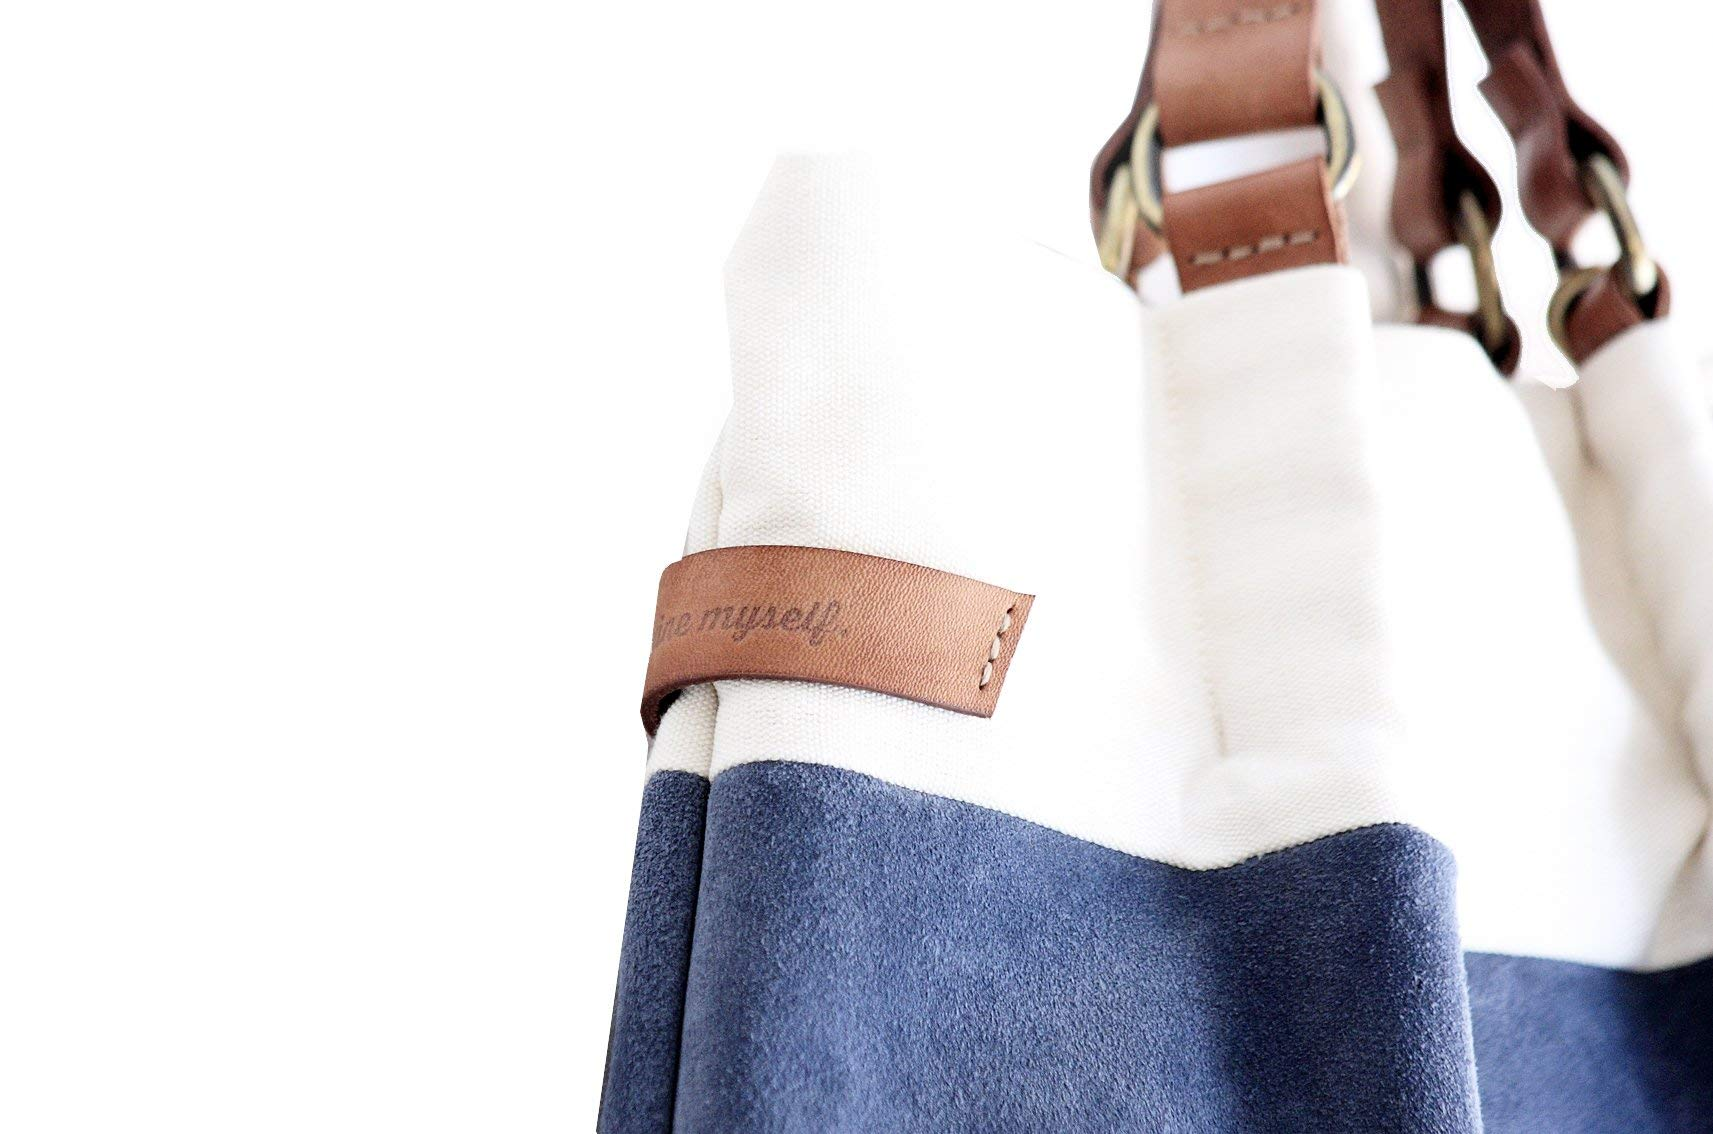 TOTE bag and HAND bag made of soft suede split leather, canvas and italian leather. Emma bag - handmade-bags